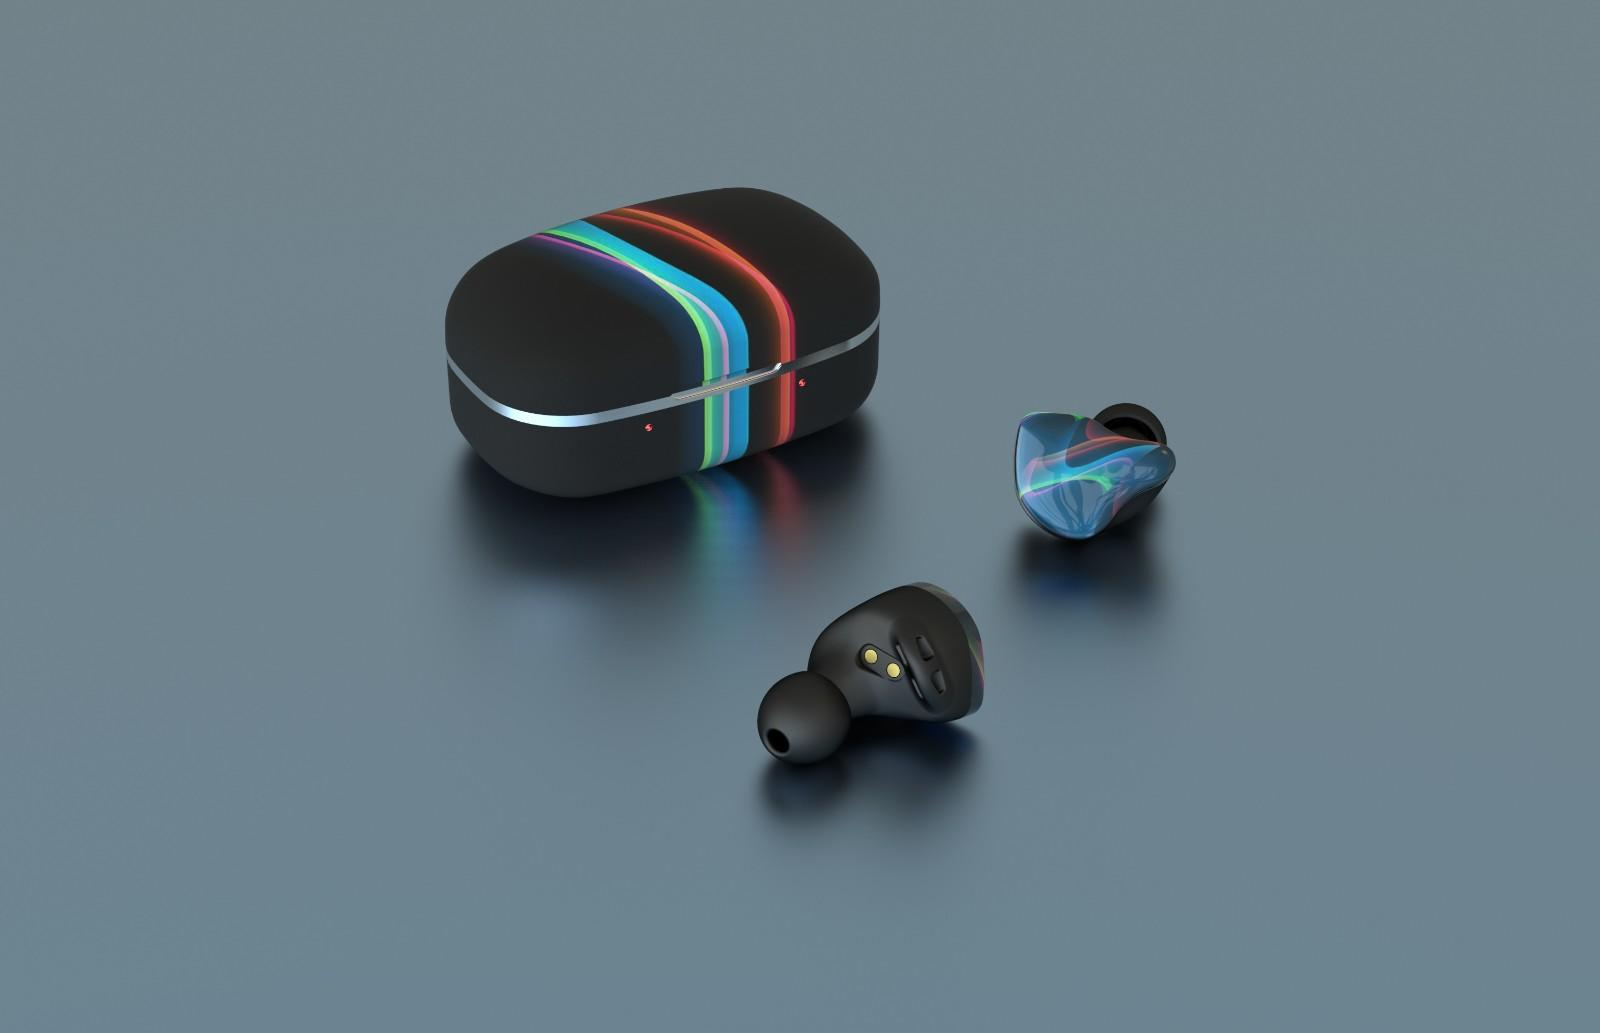 waterproof earbuds with detachable cable with three dimensional printing for sale